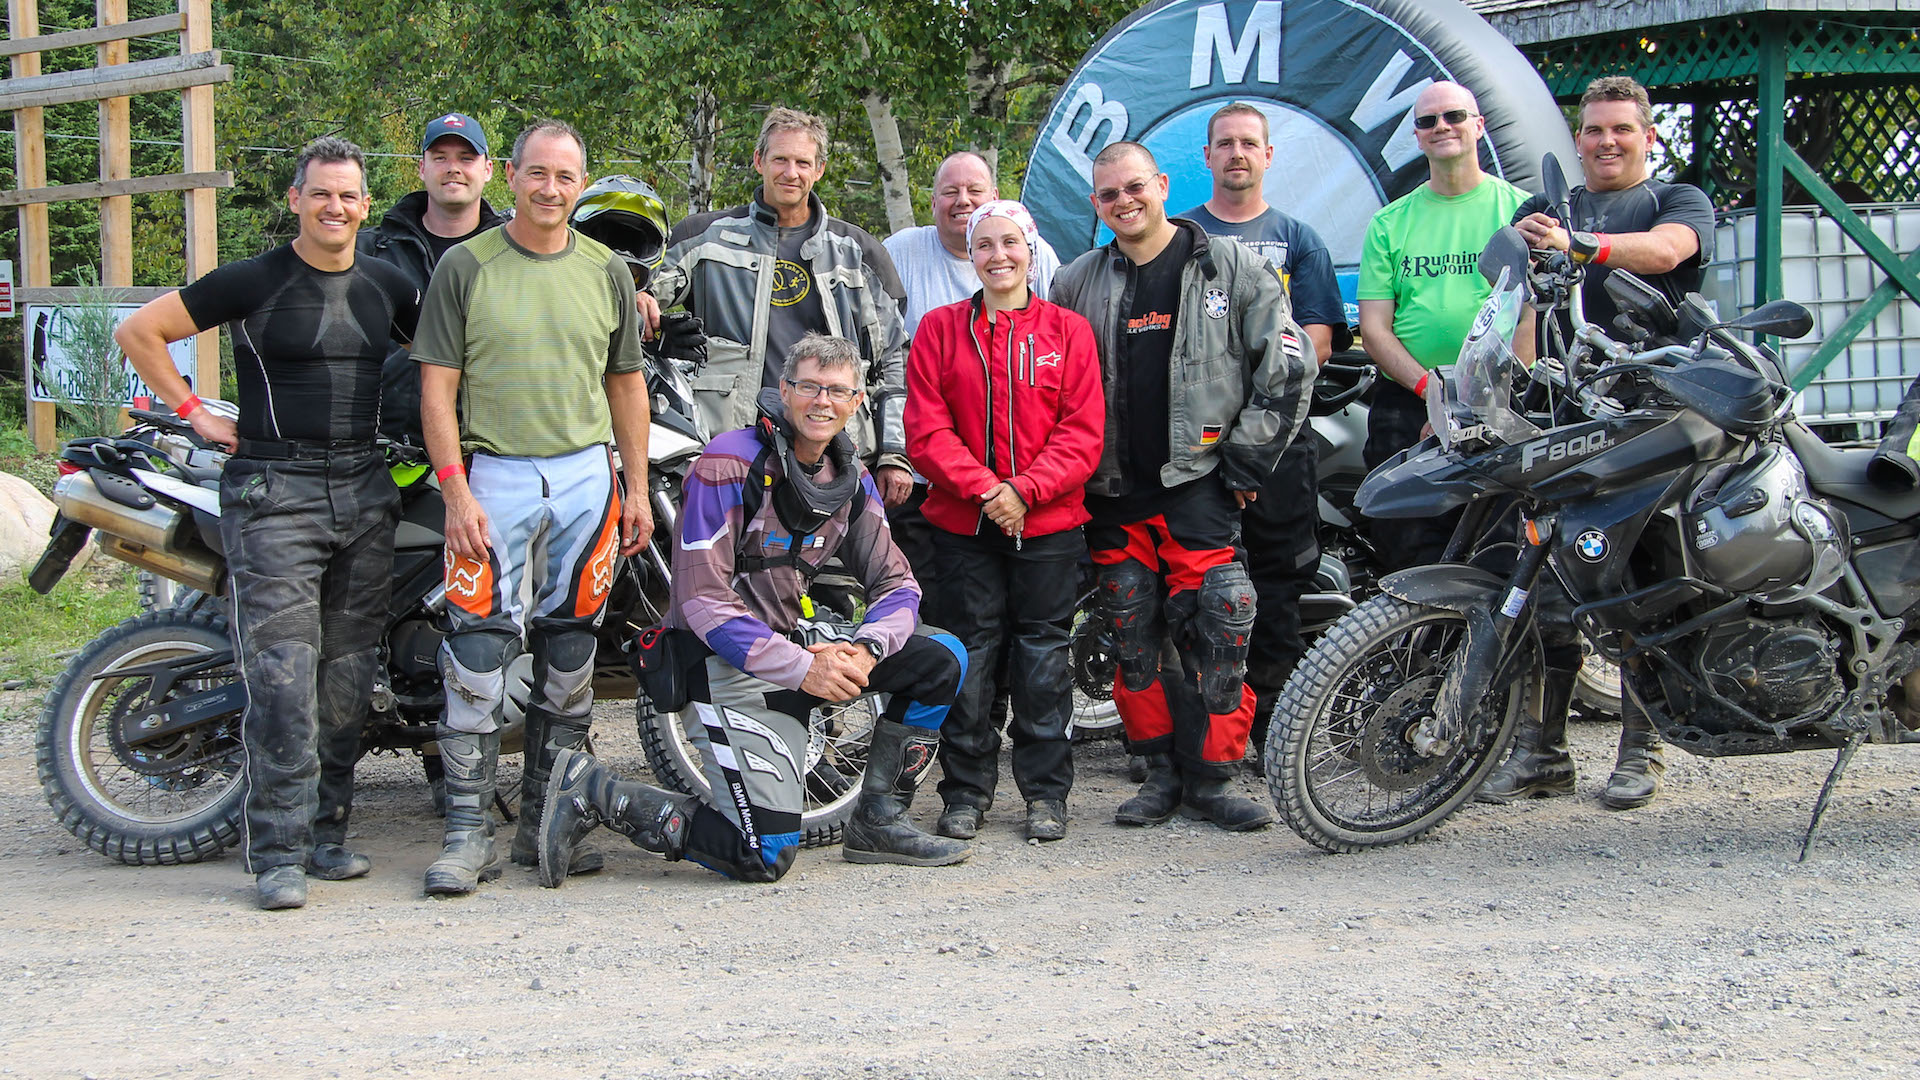 Graduates of the Clinton Smout Rider Training School held on Thursday